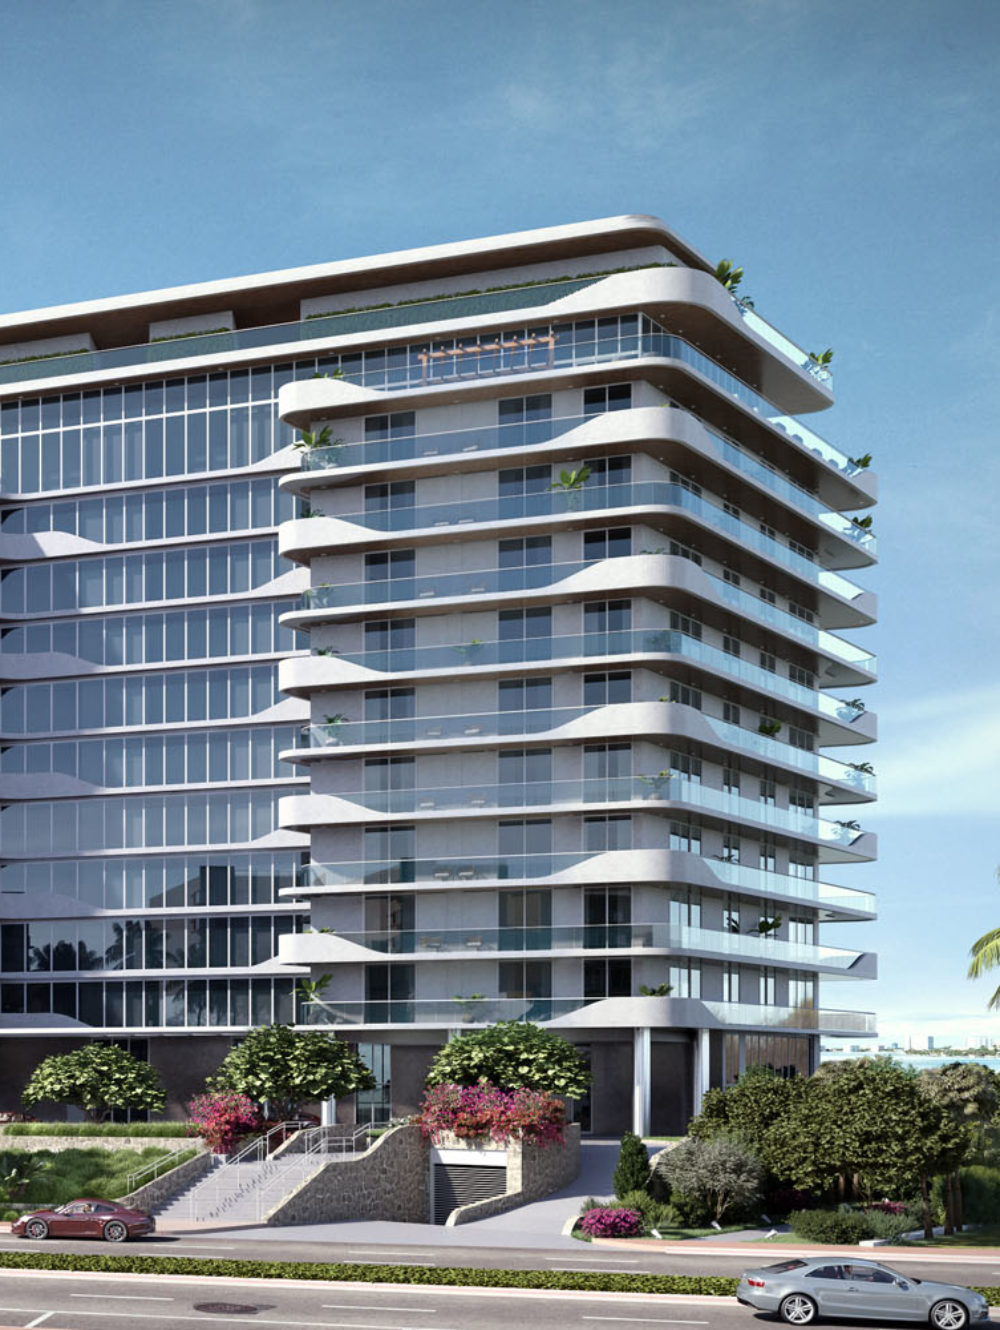 Miamicondosforsale_MonacoYachtClub_Exterior_Building_Architecture_Waterfront